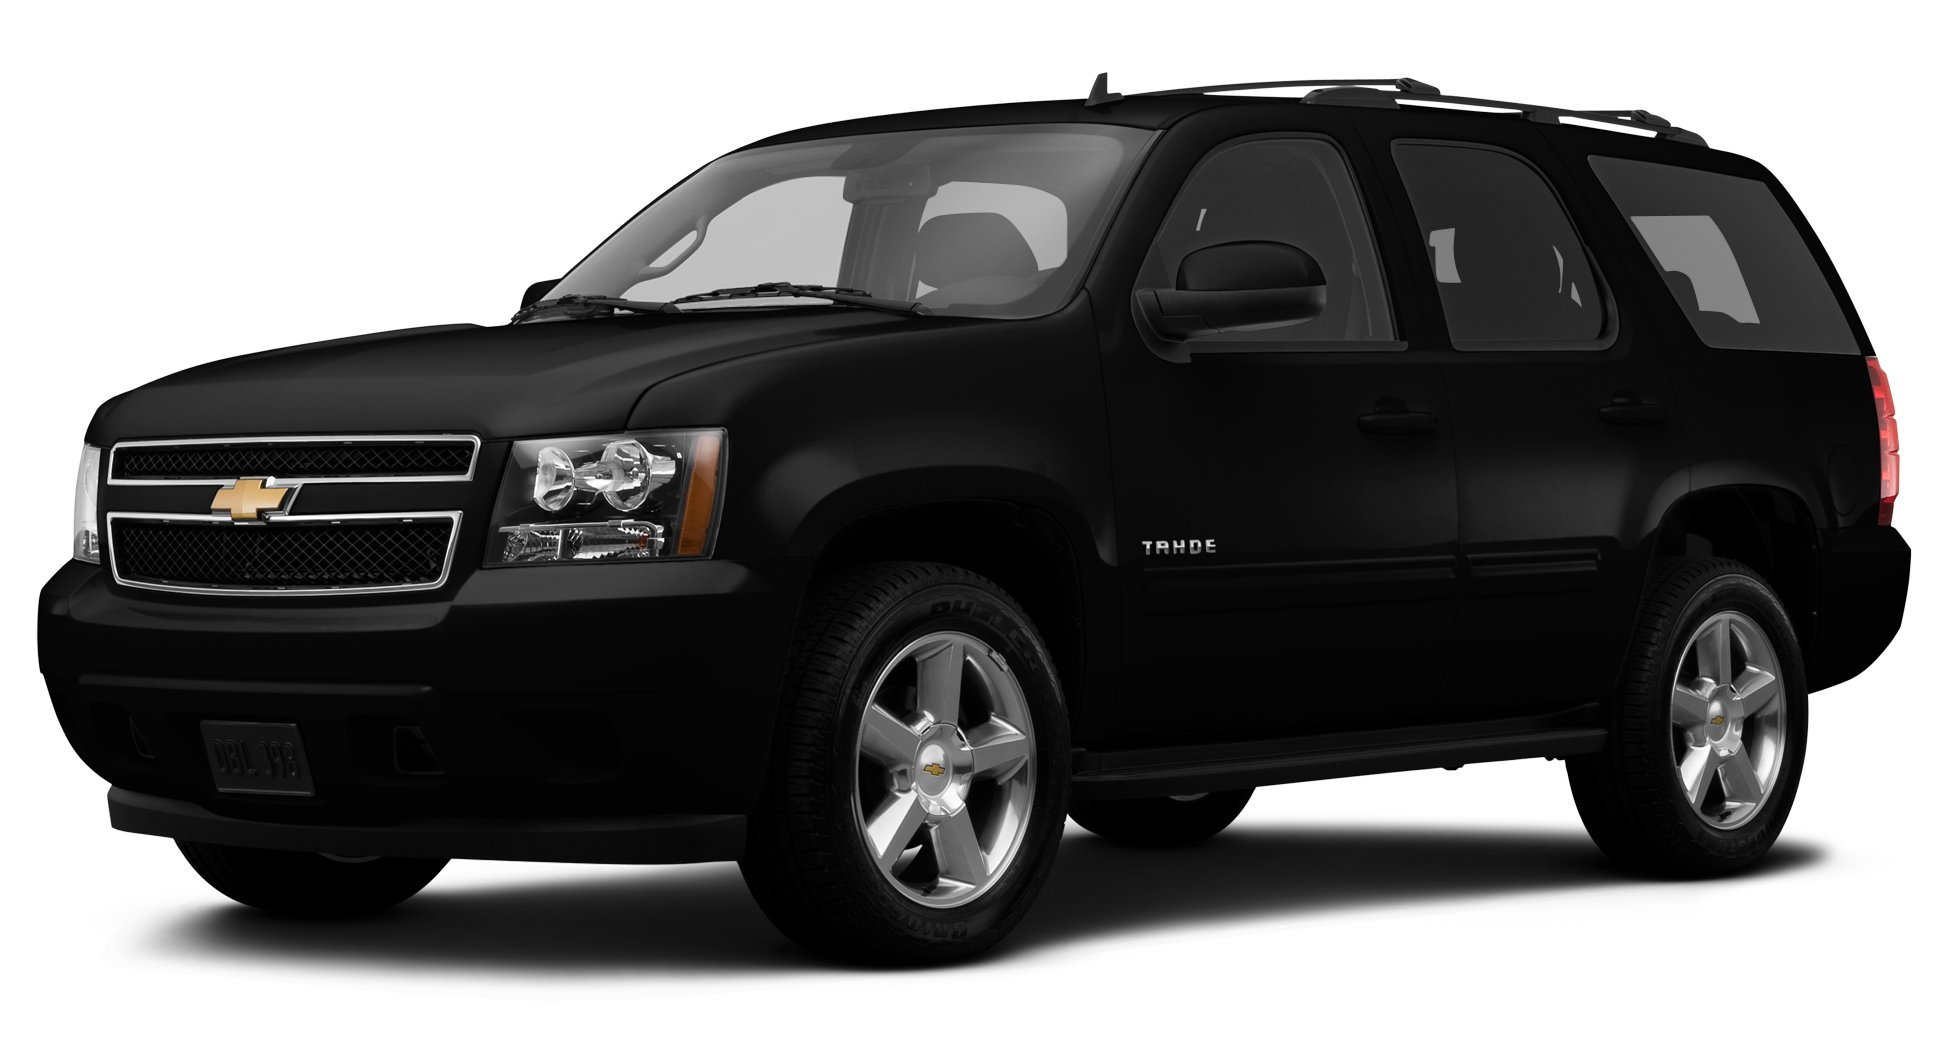 chevrolet tahoe chevy review